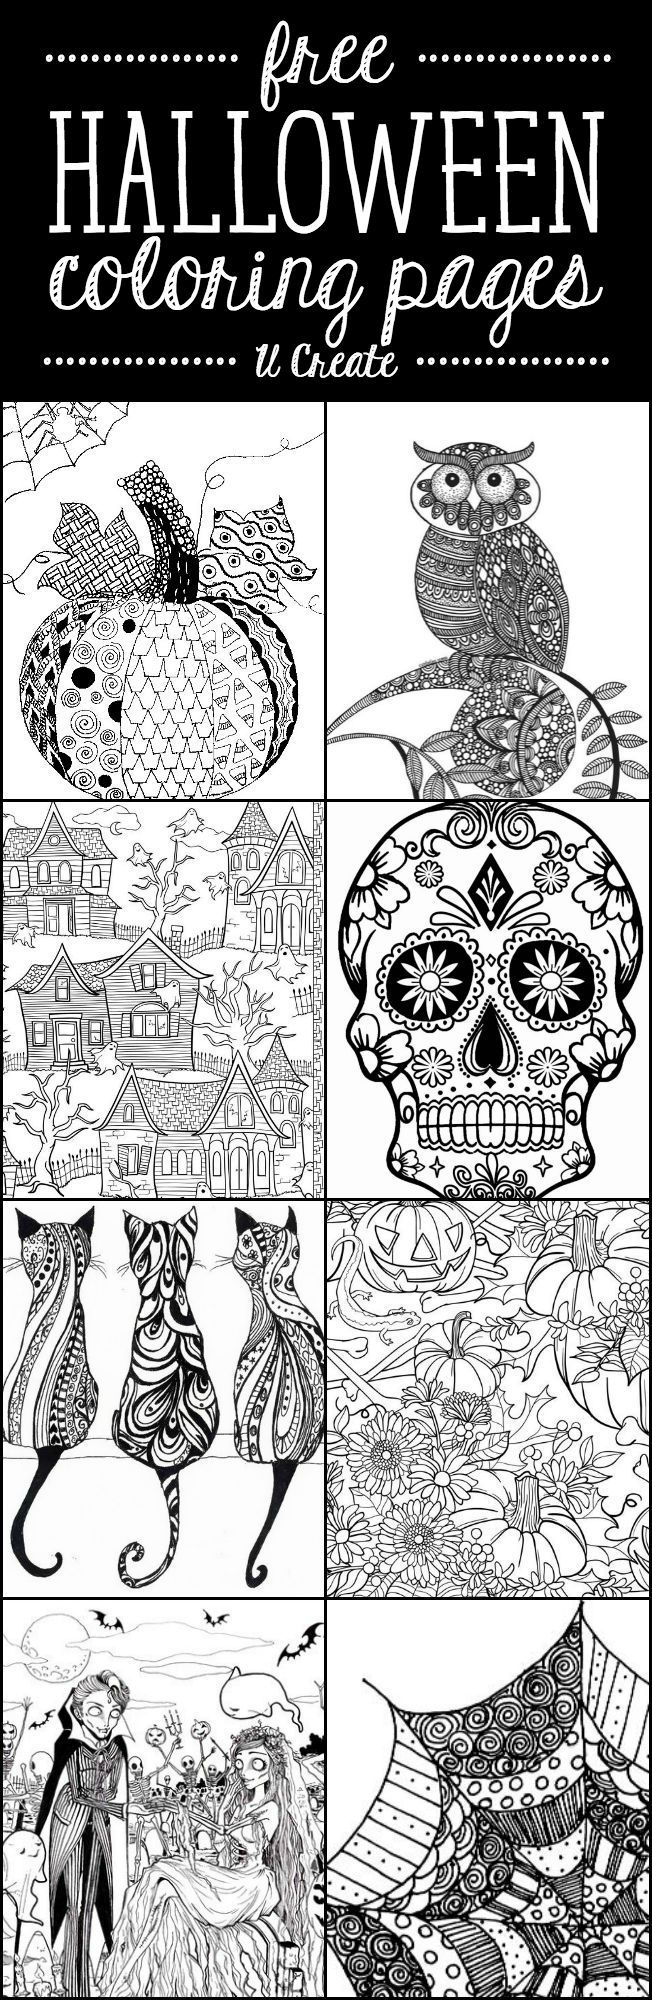 Free Halloween Adult Coloring Pages (U Create) | Para fondo de ...